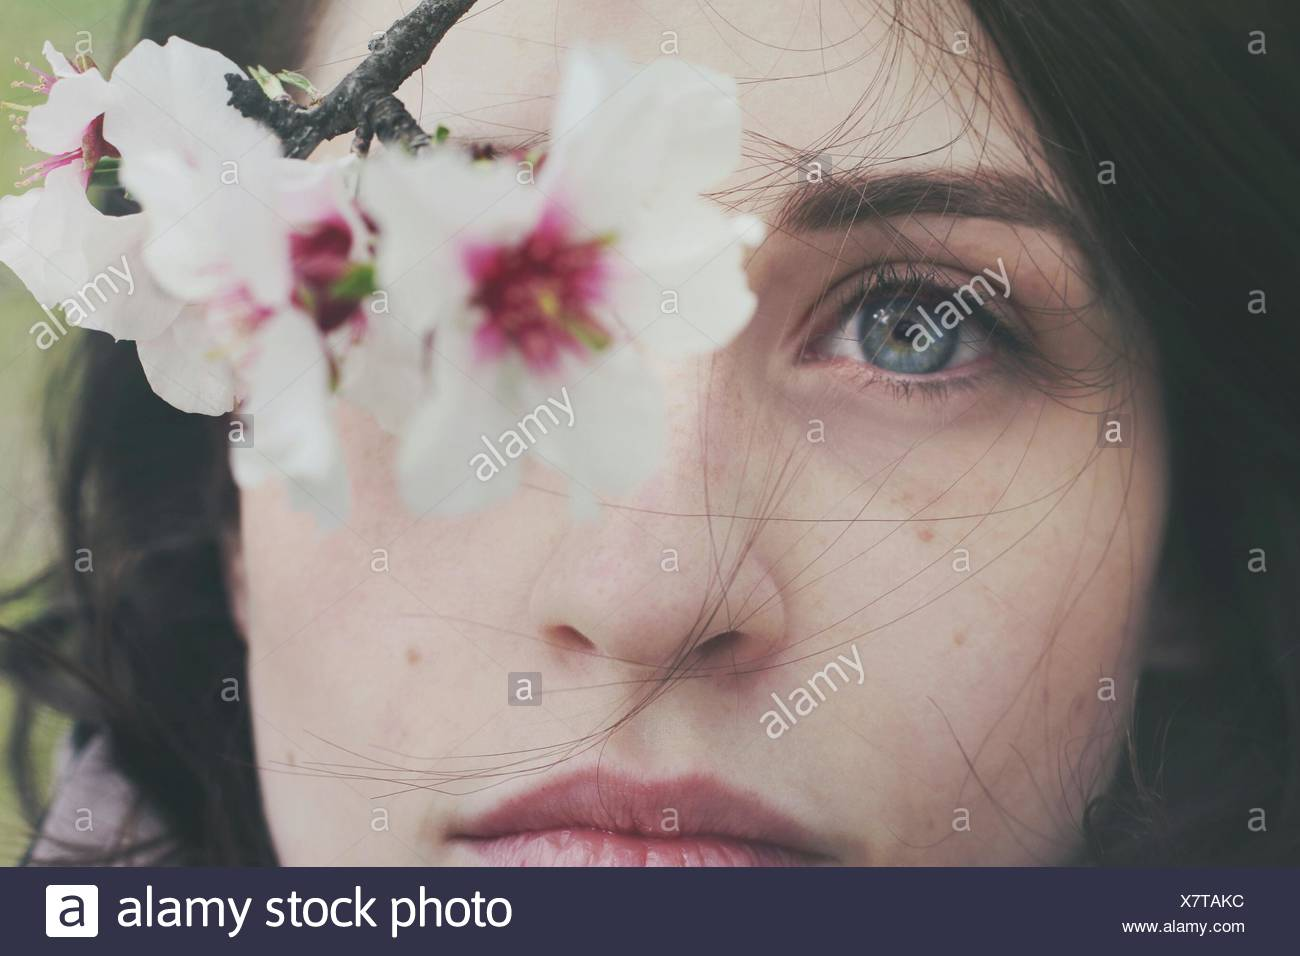 Portrait of Woman et fleurs Photo Stock